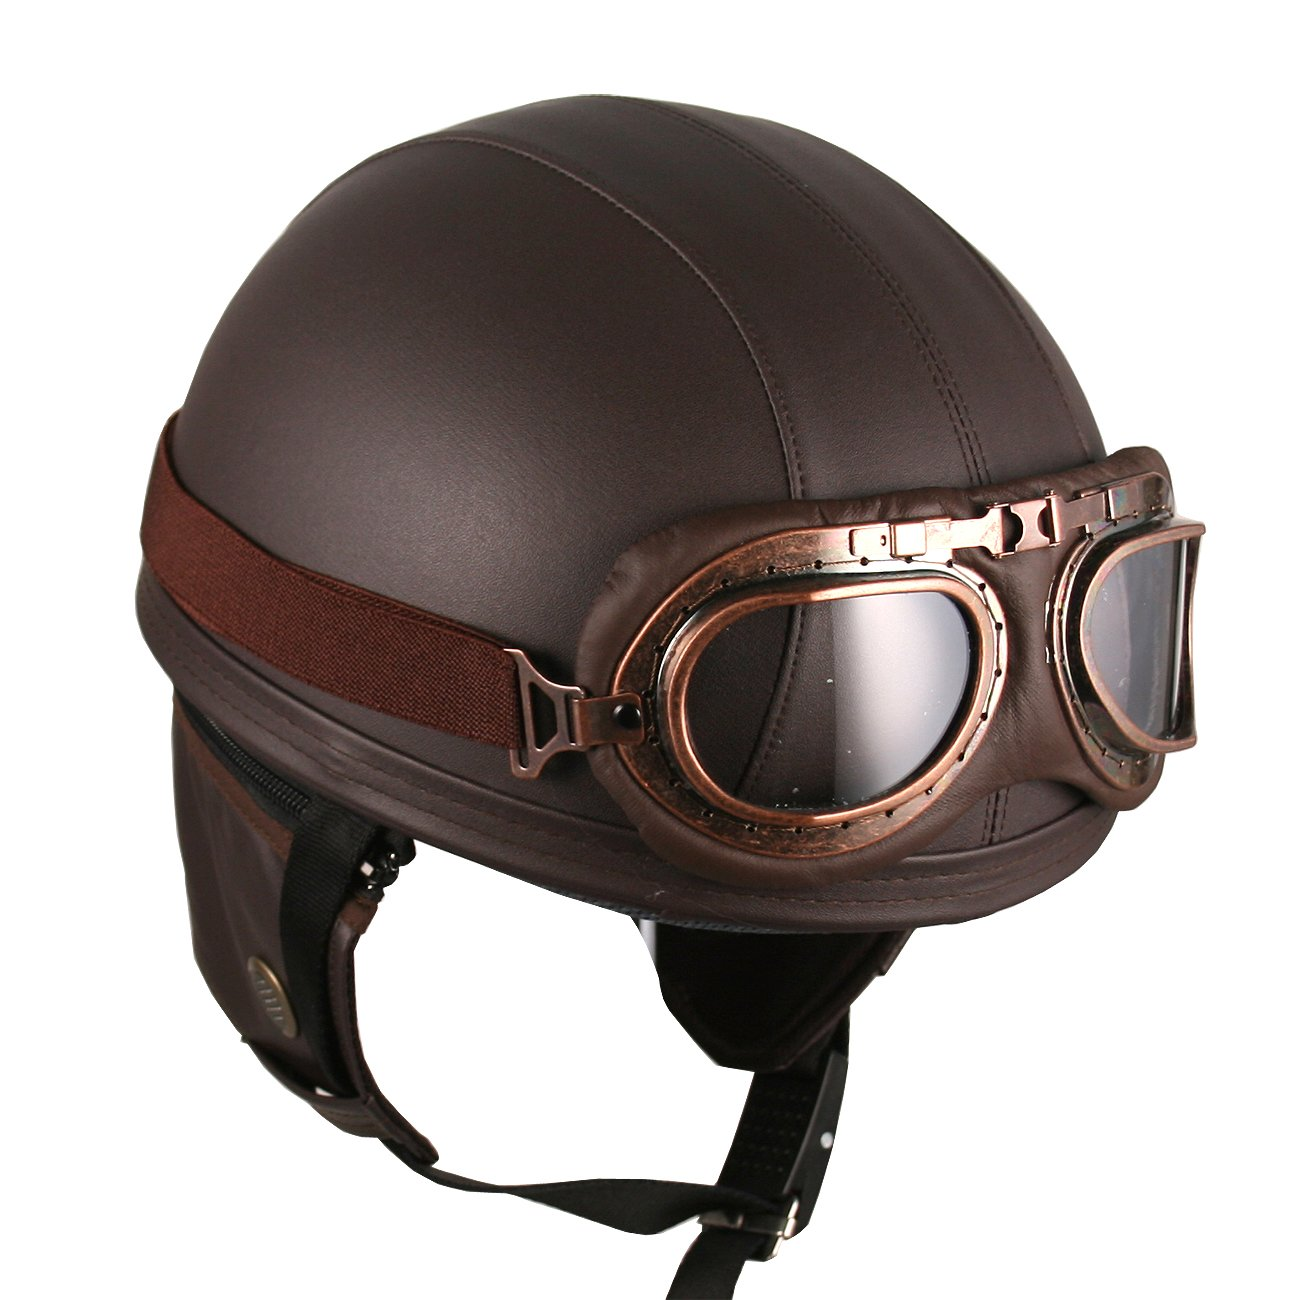 Hanmi Leather Brown Motorcycle Goggles Vintage Garman Style Half Helmets Motorcycle Biker Cruiser Scooter Touring Helmet Amazon In Car Motorbike